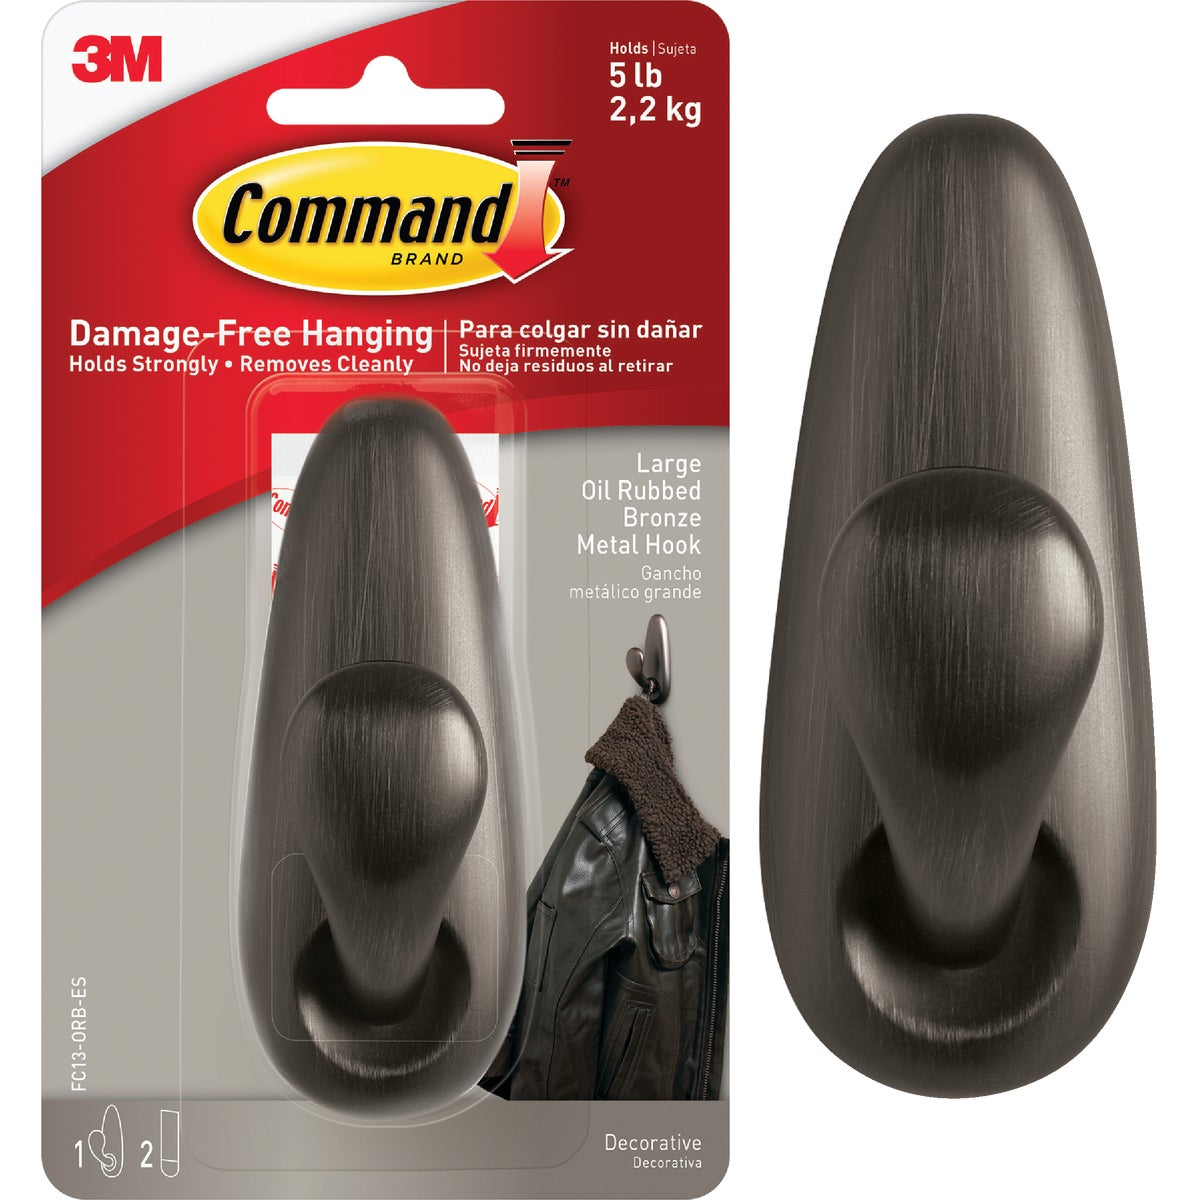 COMMAND LRG BRONZE HOOK